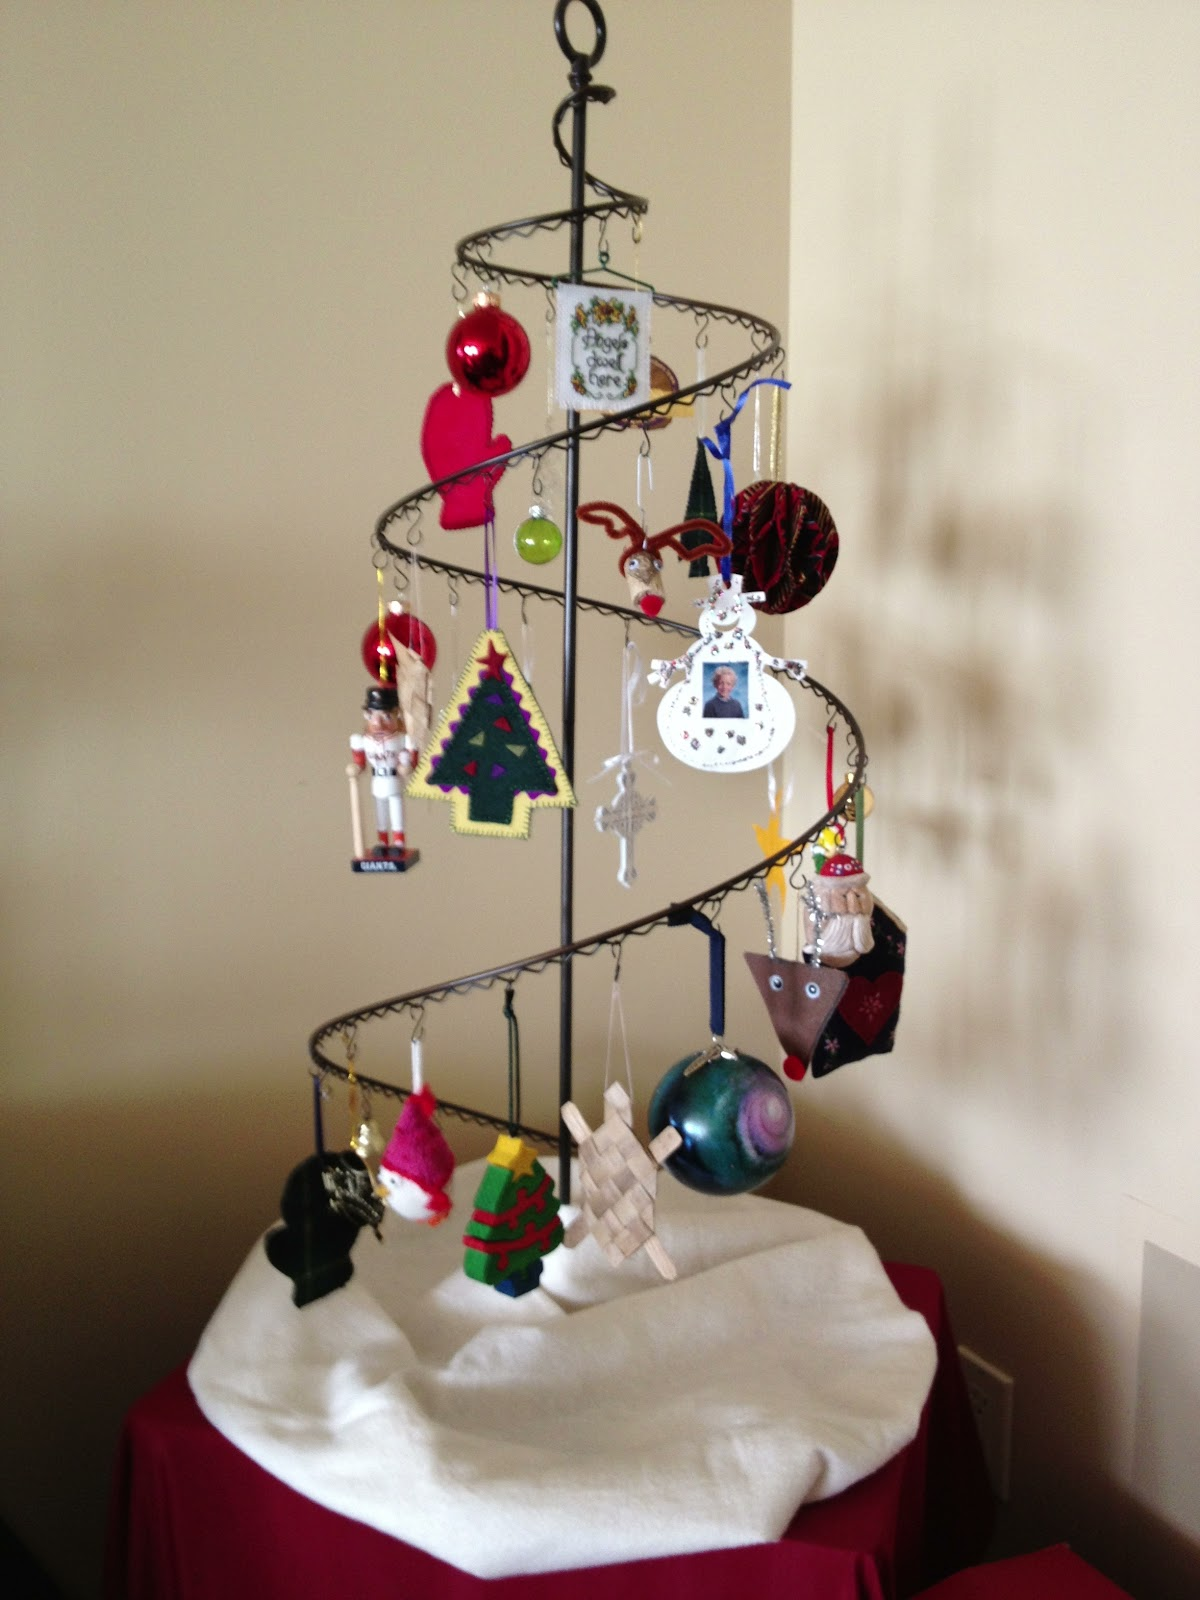 Christmas tree ornament display -  Misterstitches And I Didn T Have A Christmas Tree But I Wanted To Display Some Of My Tree Ornaments So I Found This Nifty Ornament Holder At Crate And